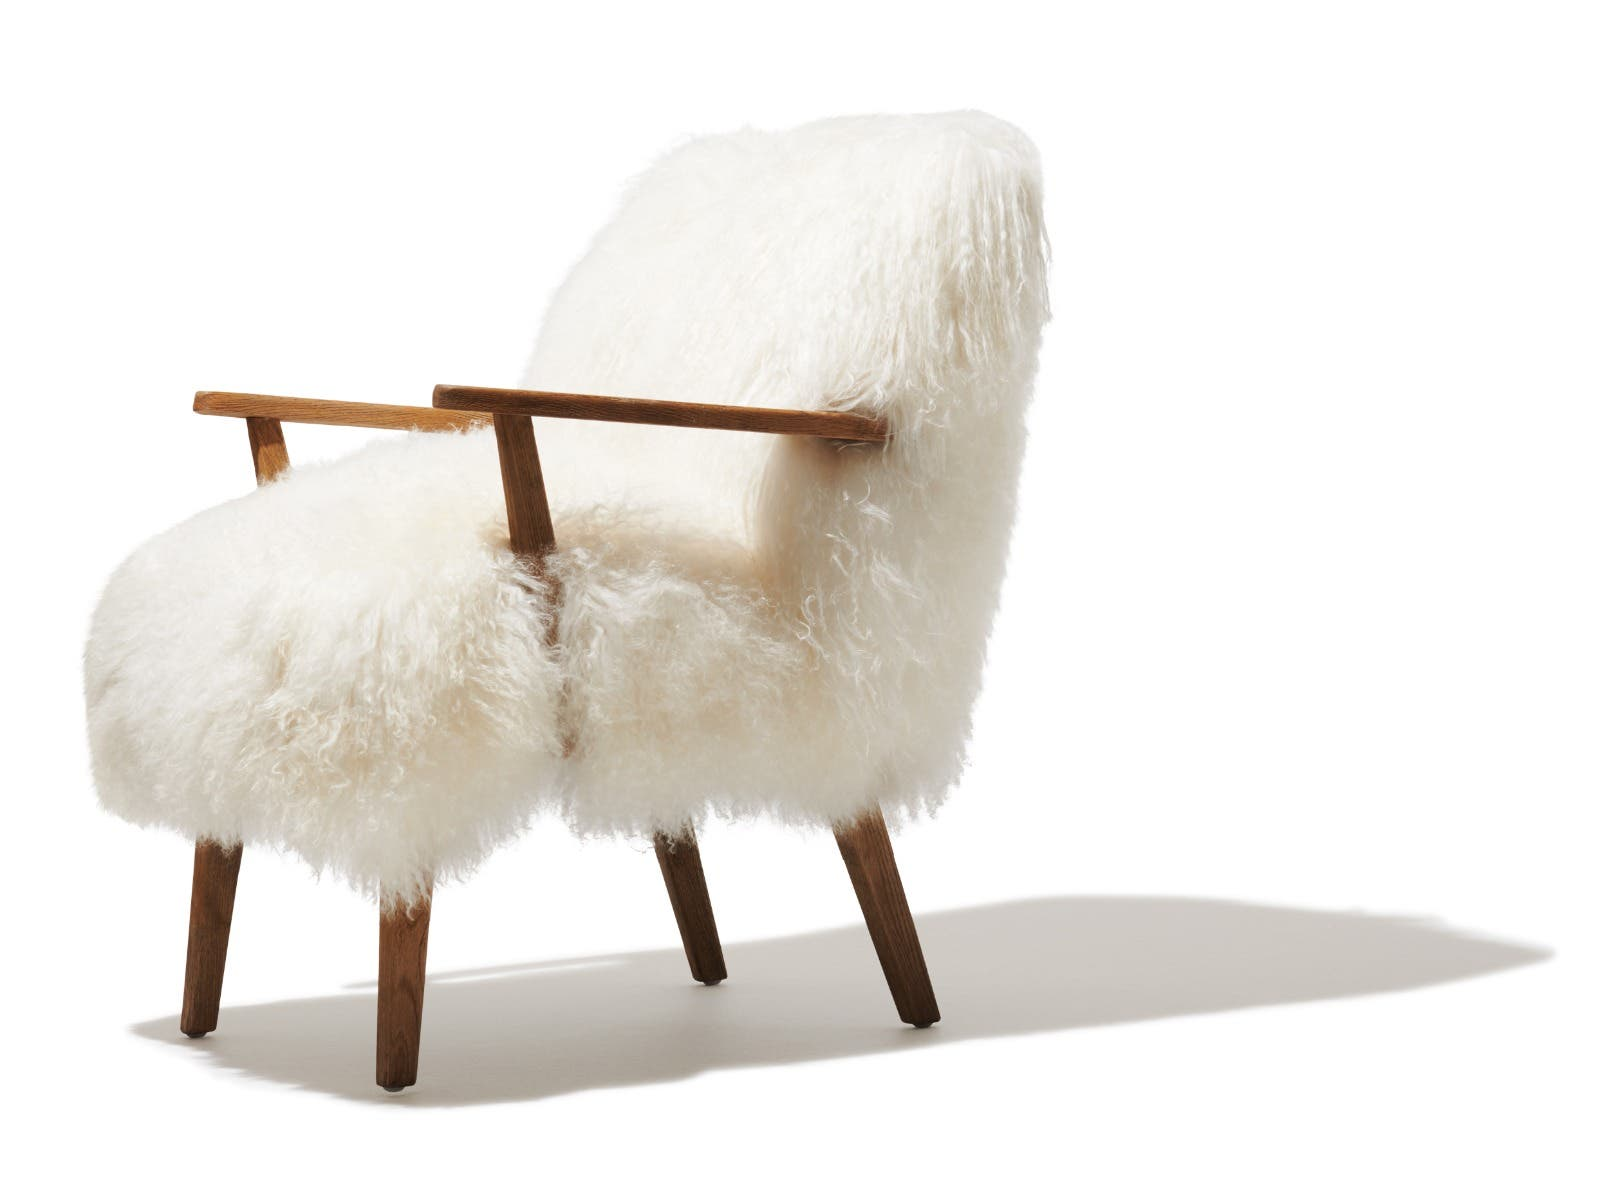 Oakwood and fur chair from Industry West